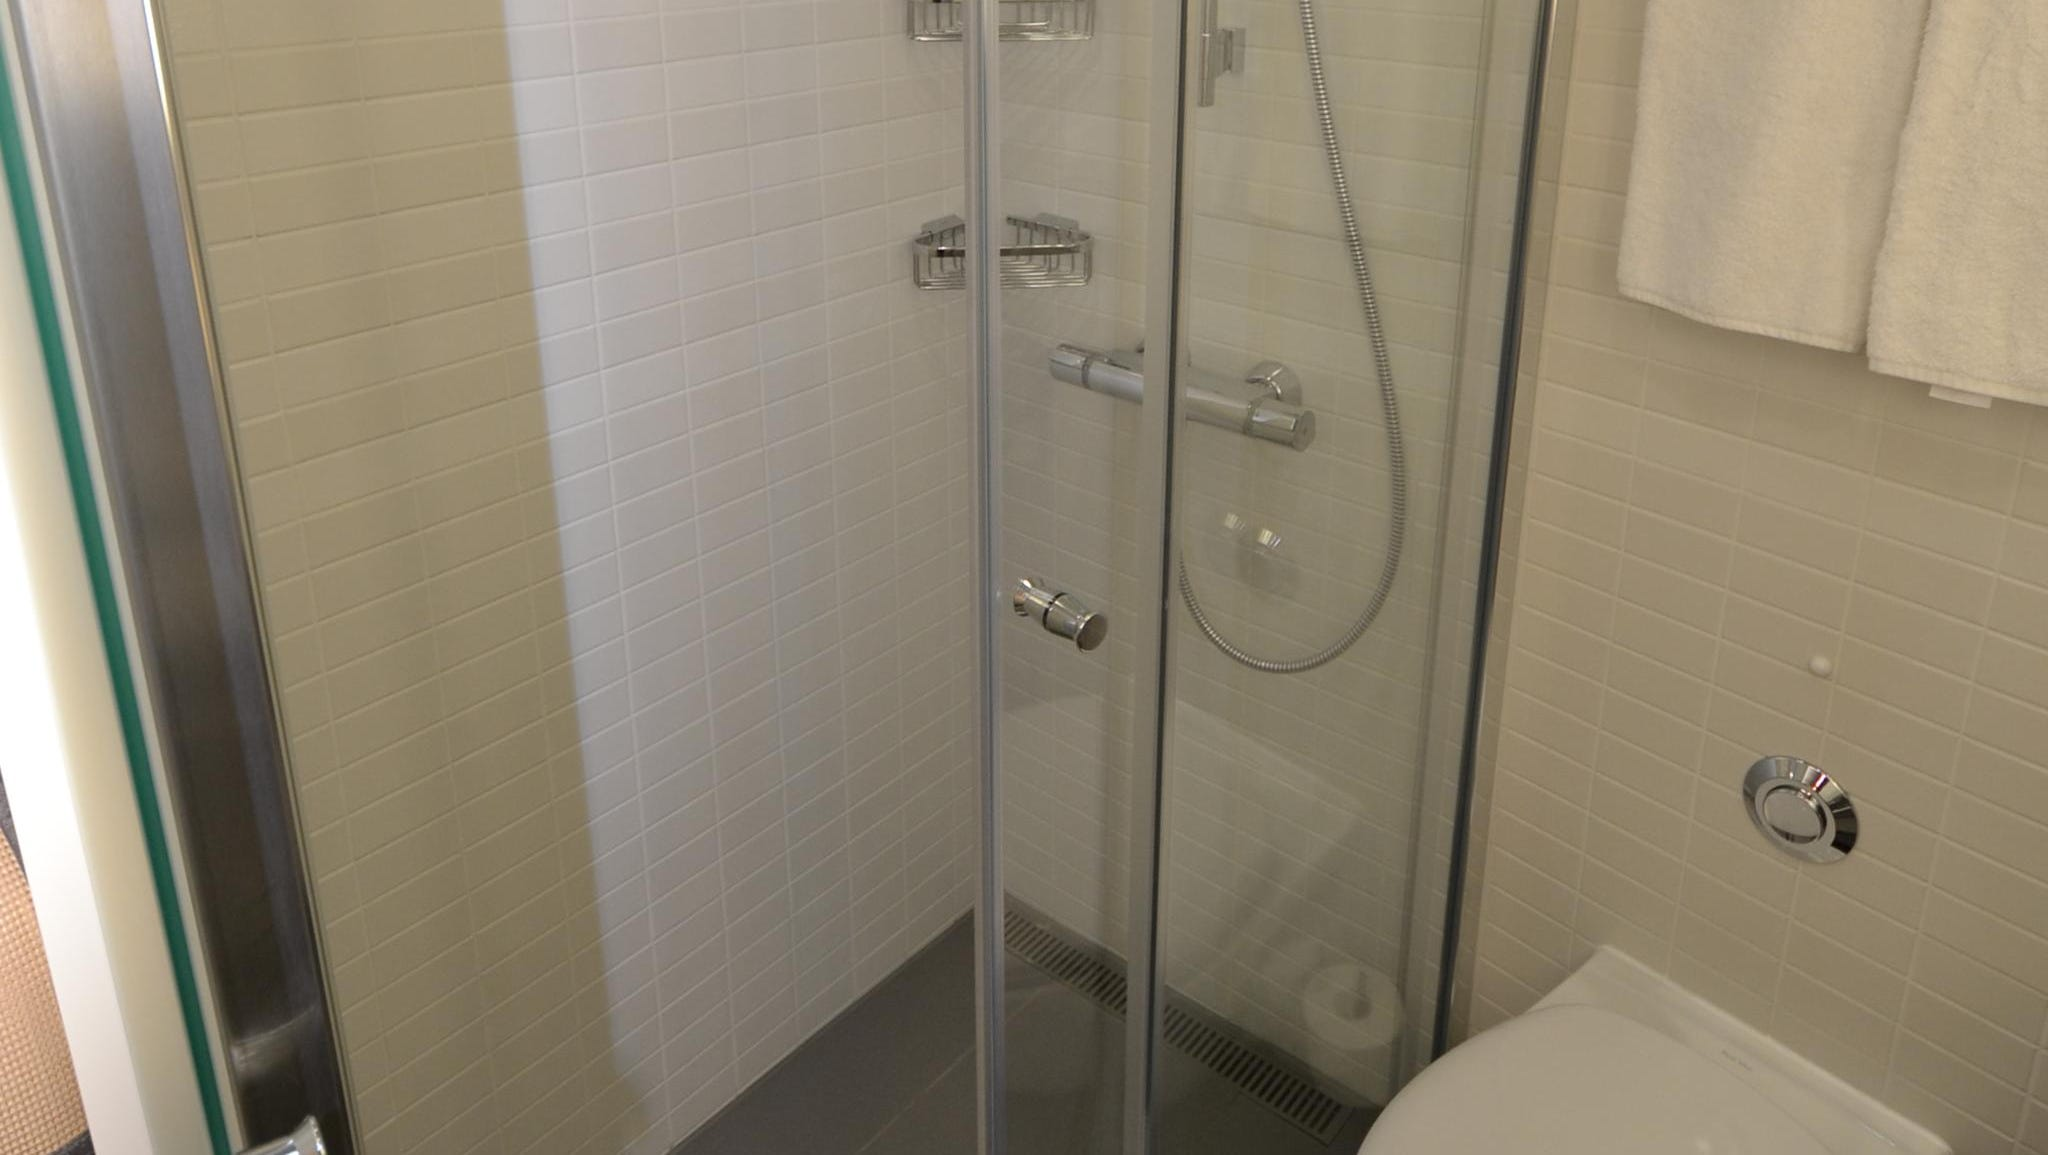 The bathrooms in French Balcony Staterooms feature a glass-enclosed shower area.